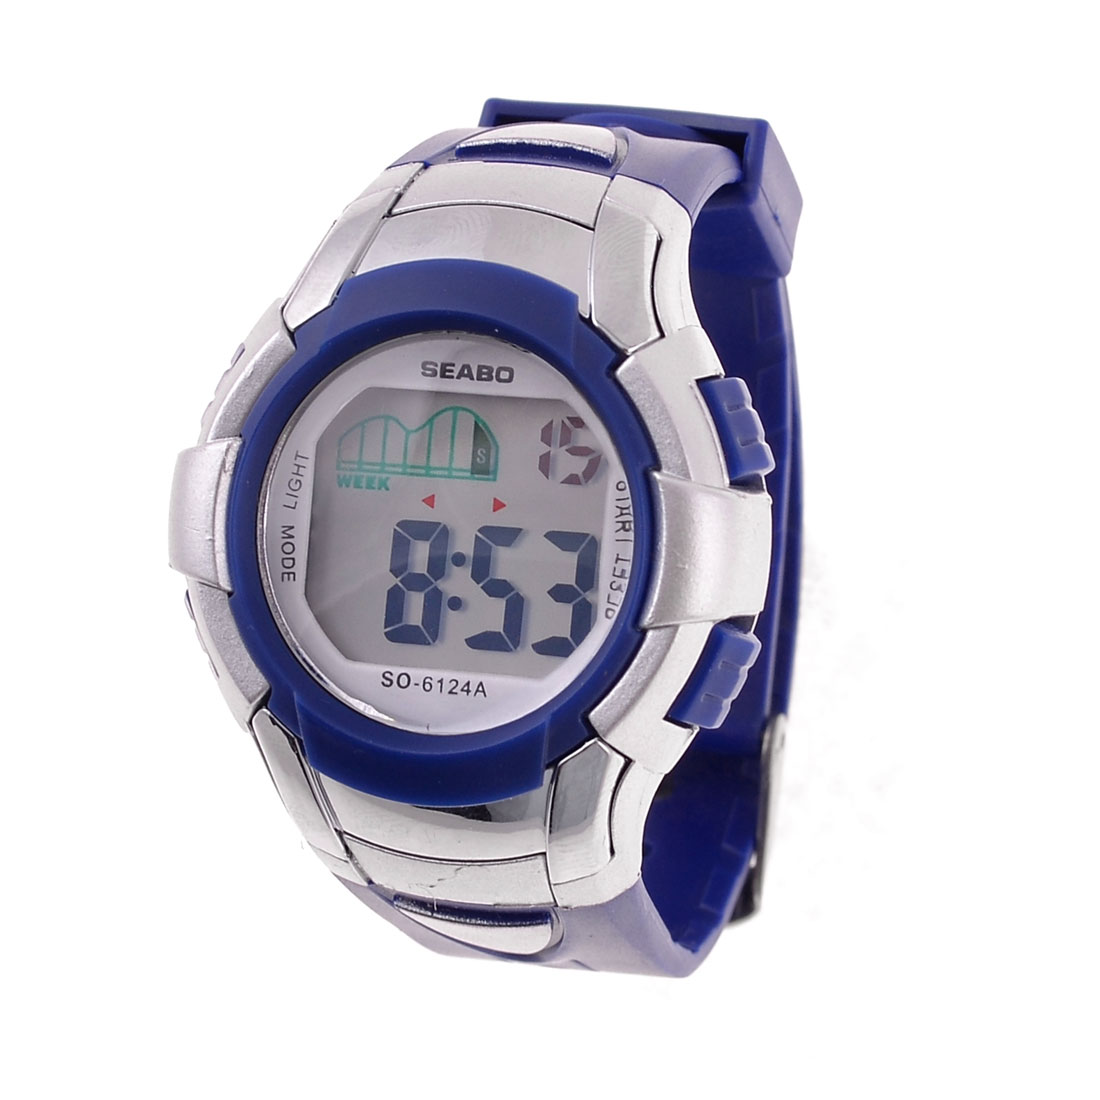 Ladies Adjustable Soft Plastic Band Sports Digital Watch Chronograph Navy Blue